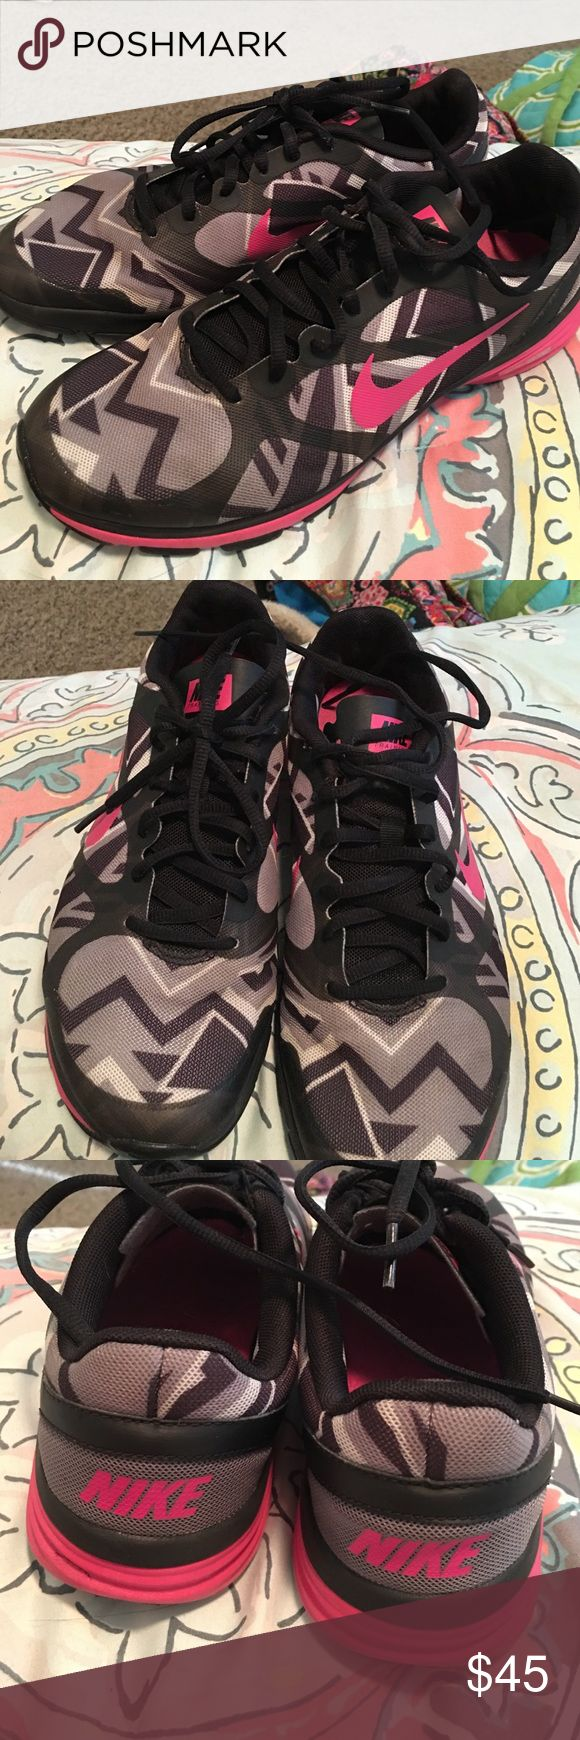 Nike dual fusion free runs. size 9, pink & black Nike dual fusion free runs. size 9, pink & black. barely been worn. nothing wrong with them, they're just too big! Nike Shoes Athletic Shoes